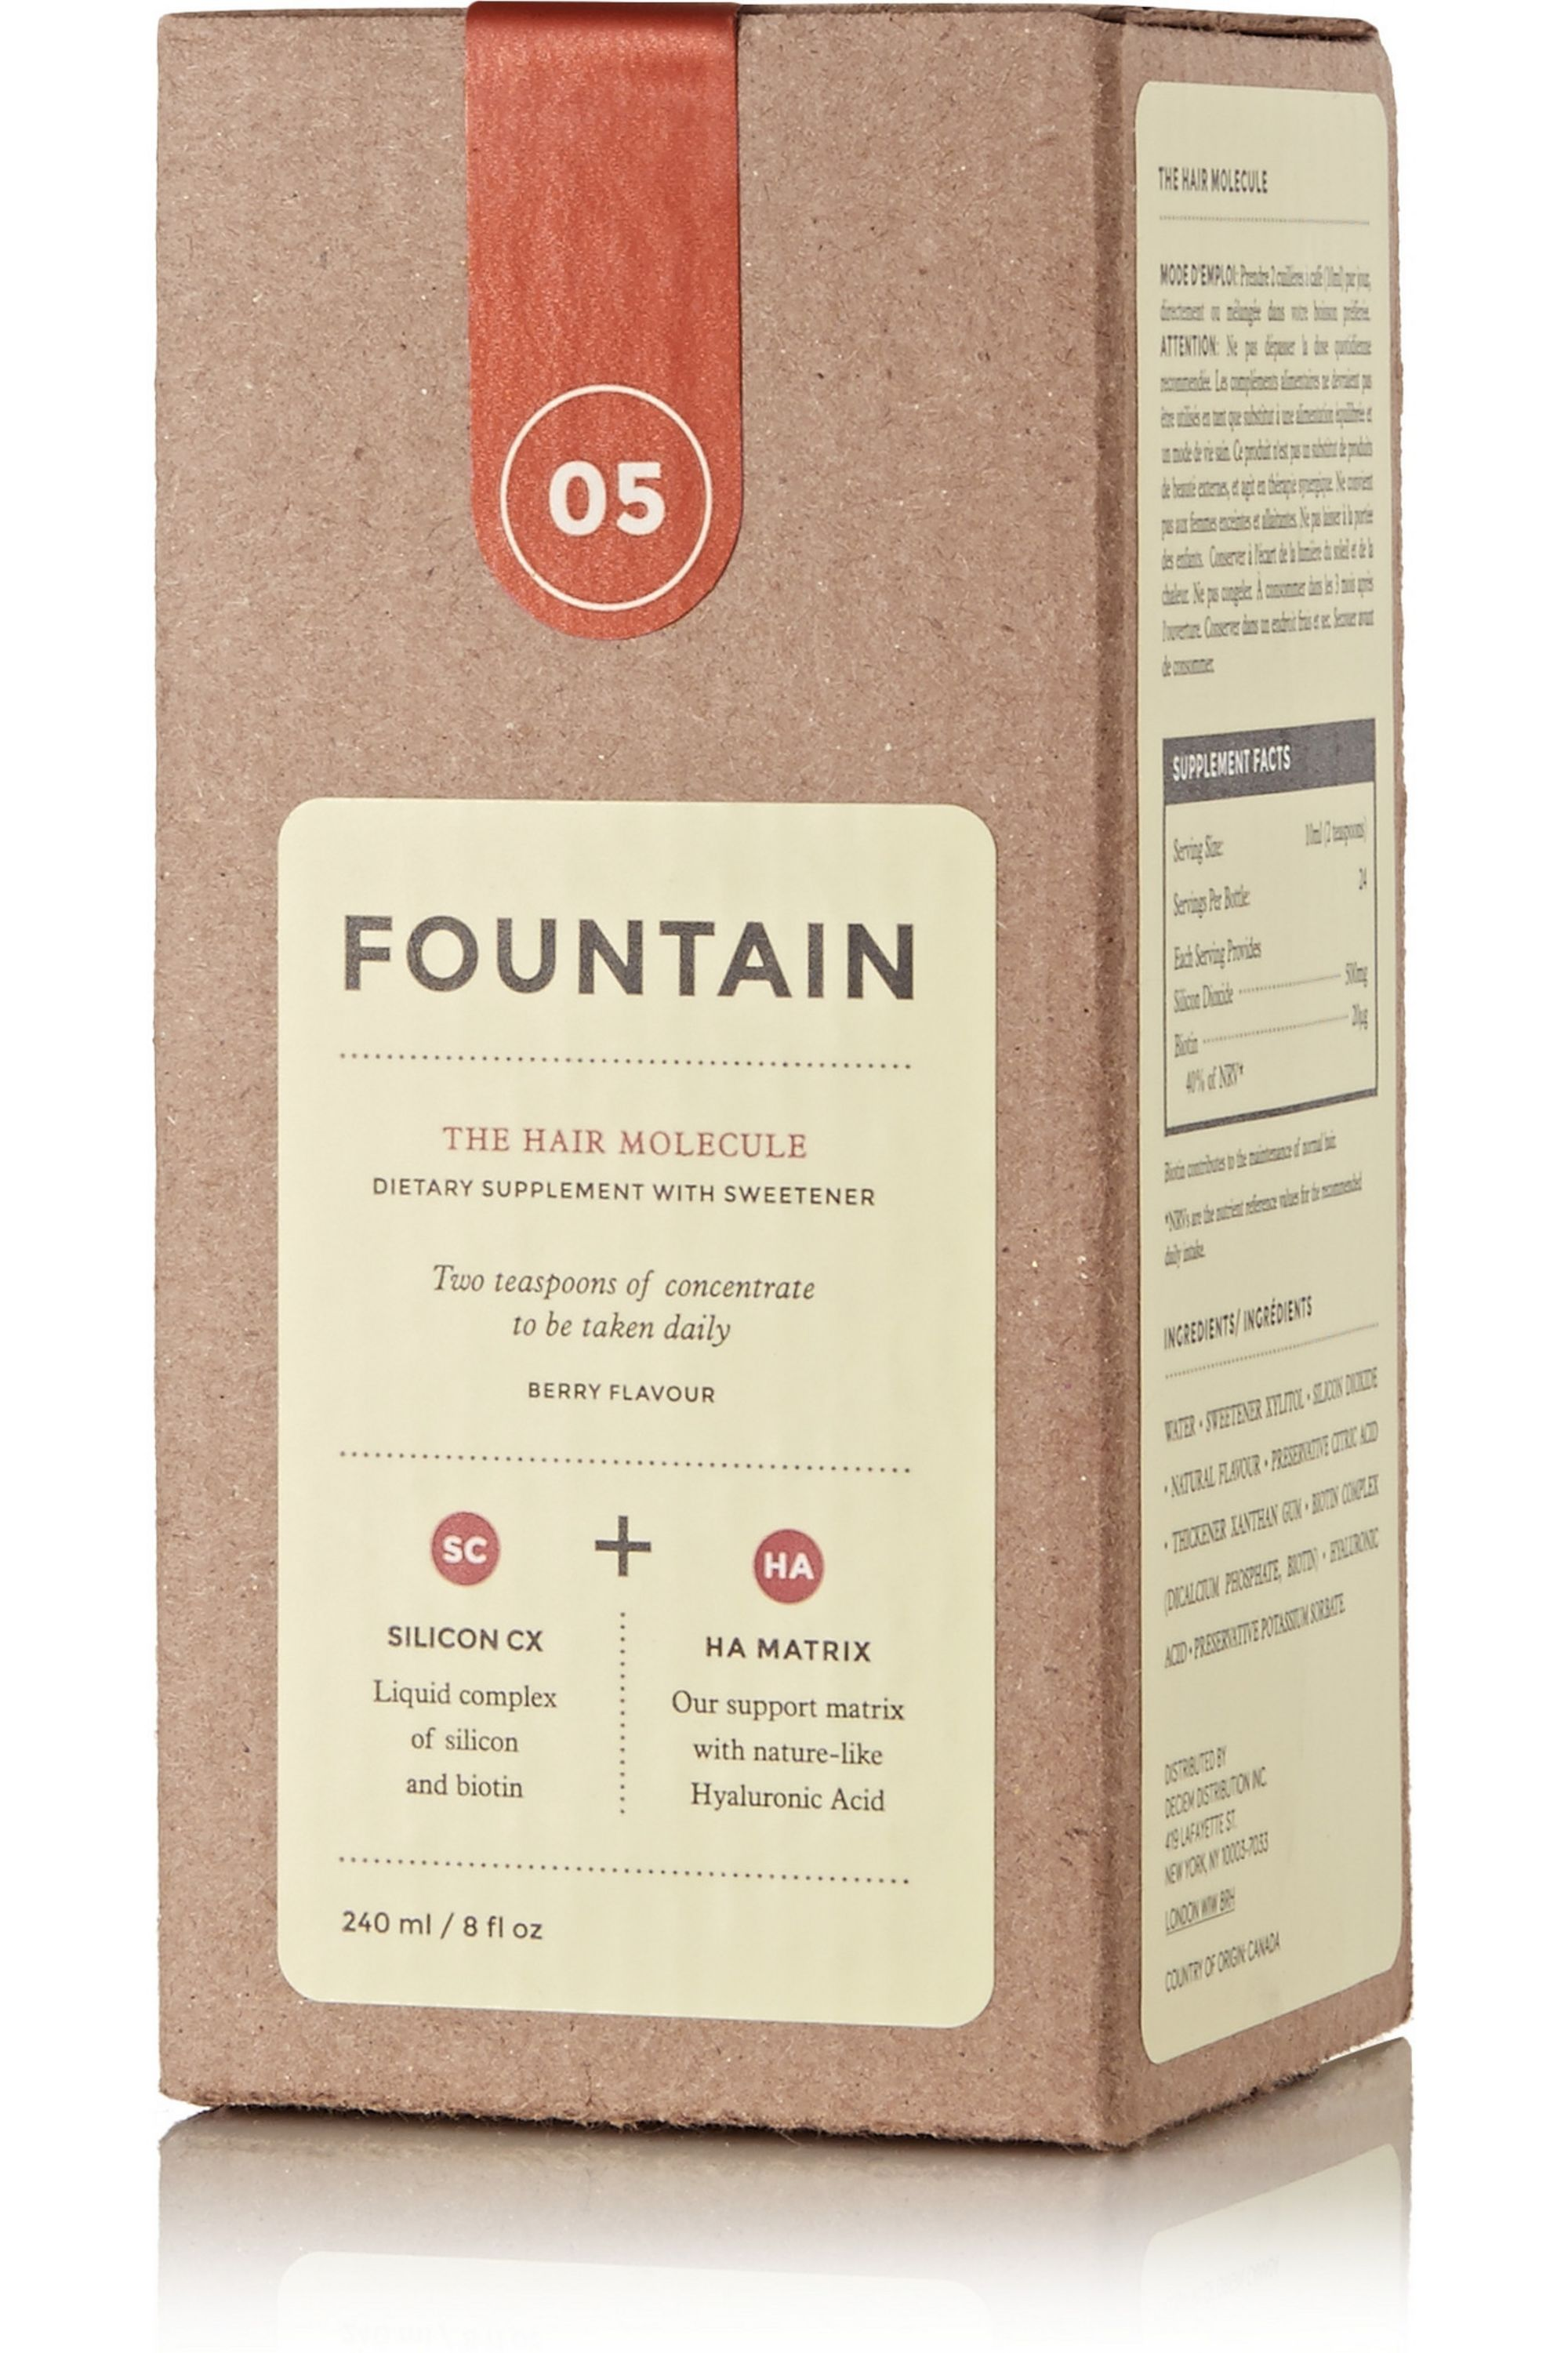 FOUNTAIN The Hair Molecule, 240ml